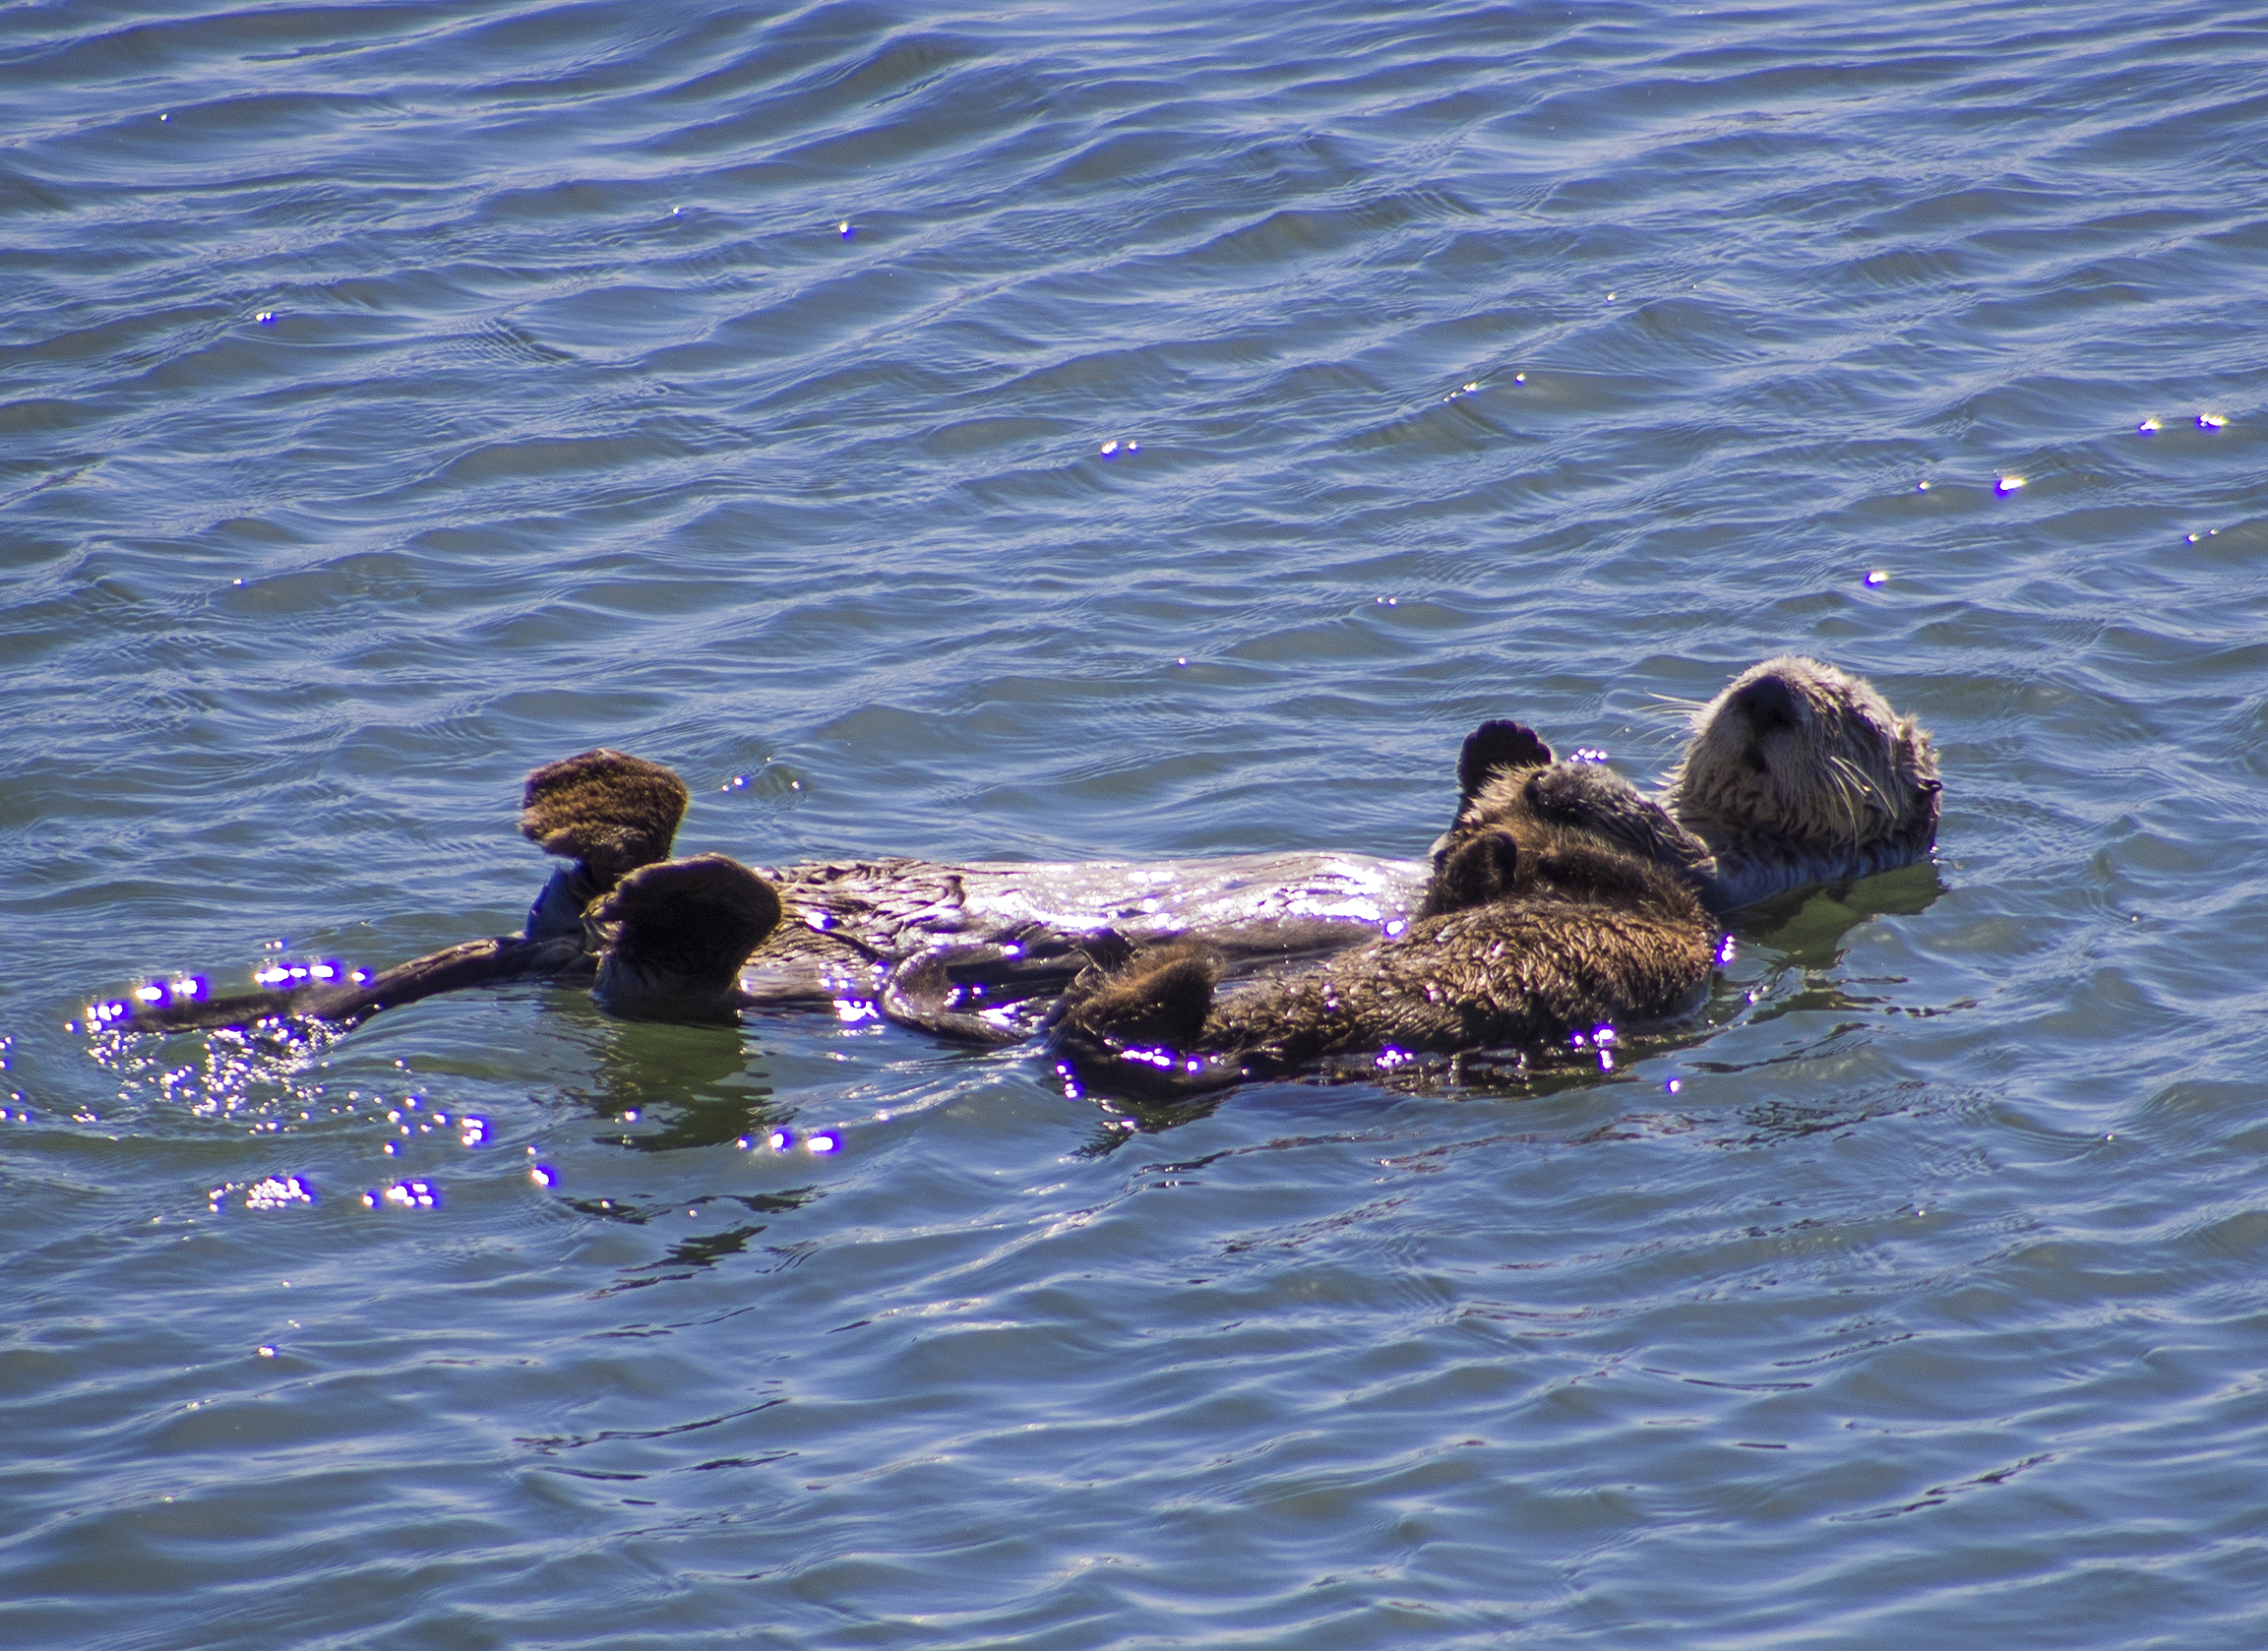 Sea Otter Mum and Pup Float Together Peacefully